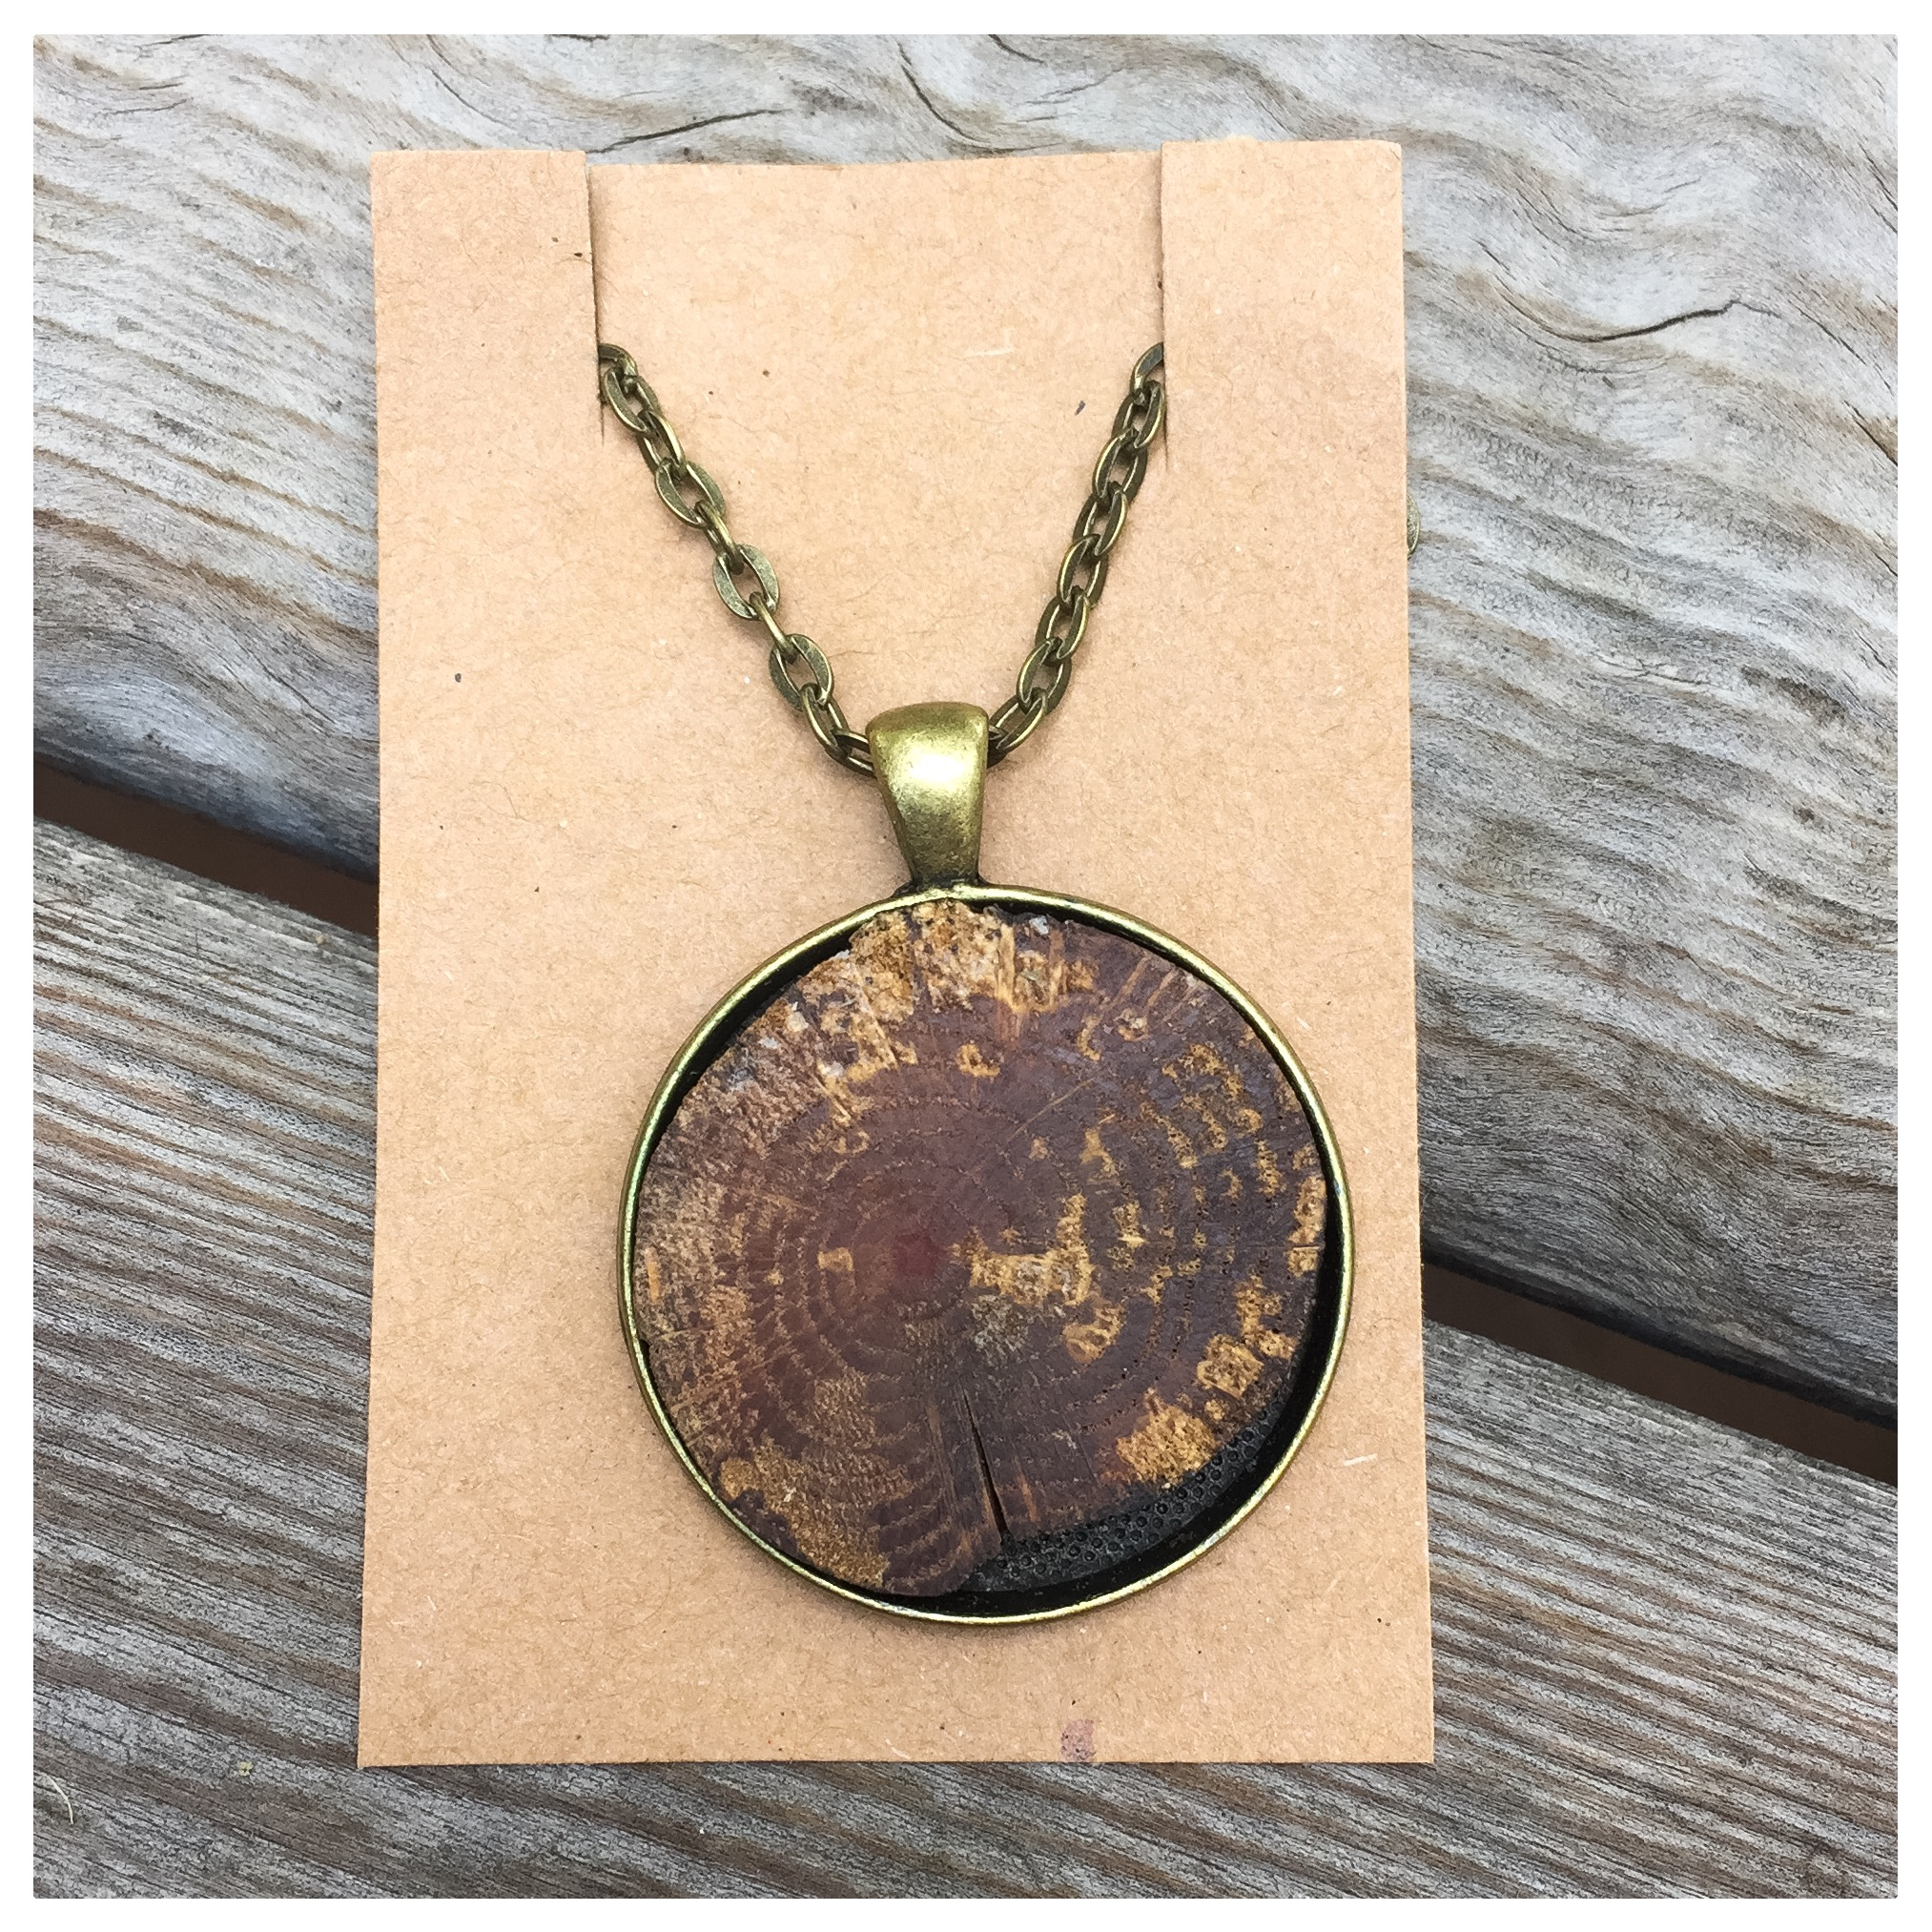 This organic wood essential oil diffuser necklace is the perfect companion to your new oils. Made specially for you by our friend at  Mango Dixie .